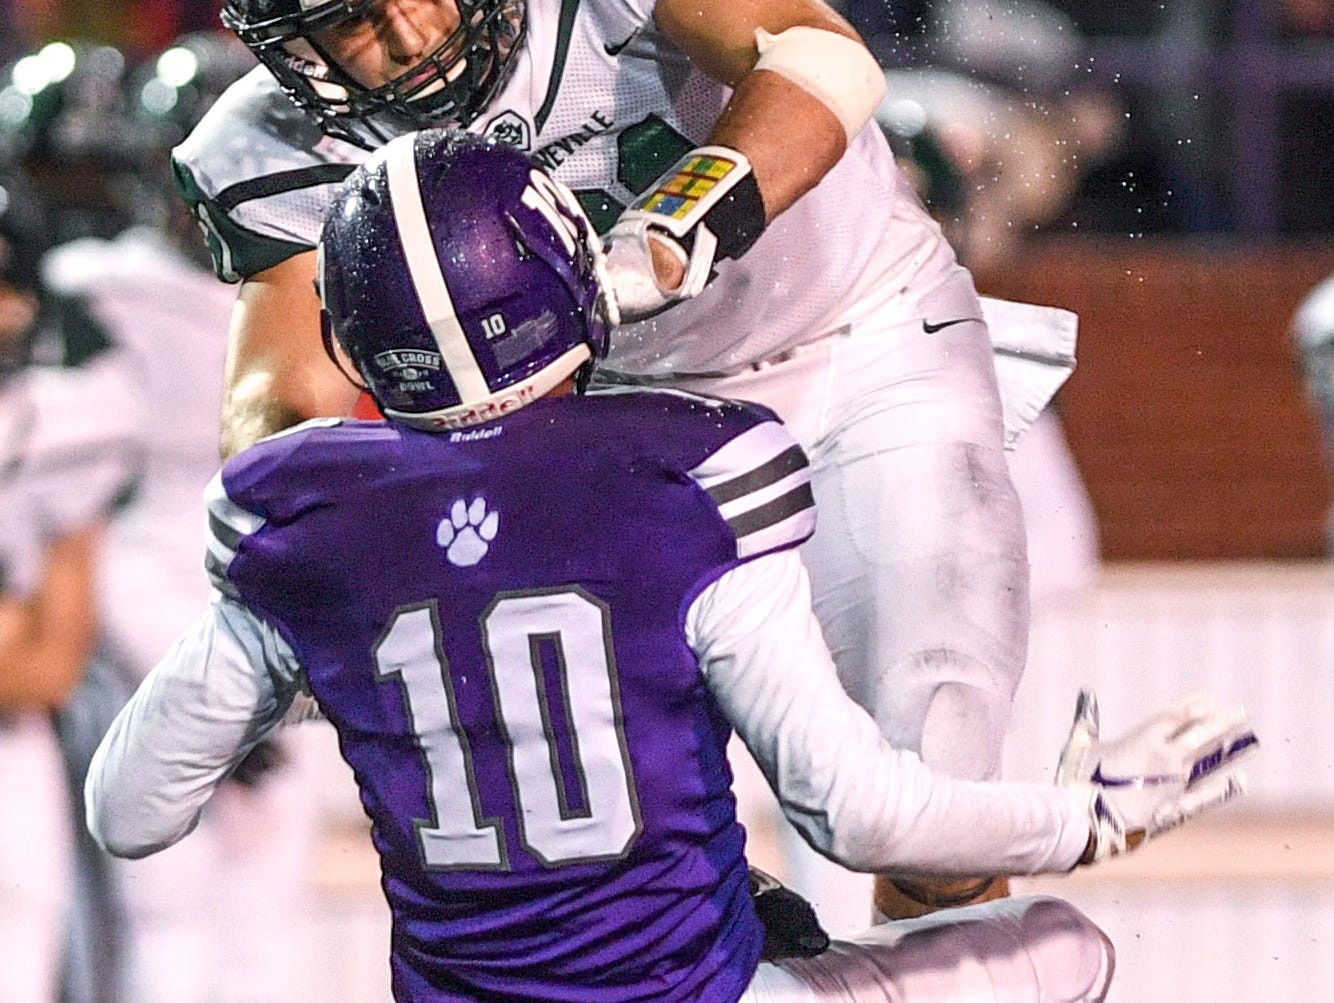 Greeneville's Cameron Hite (21) shoves Haywood's Taylor Shields (10) onto the ground after Shields failed to Catch a pass during the Class 4A Blue Cross Bowl between Haywood and Greeneville at Tennessee Tech's Tucker Stadium in Cookeville, Tenn., on Thursday, Nov. 29, 2018.